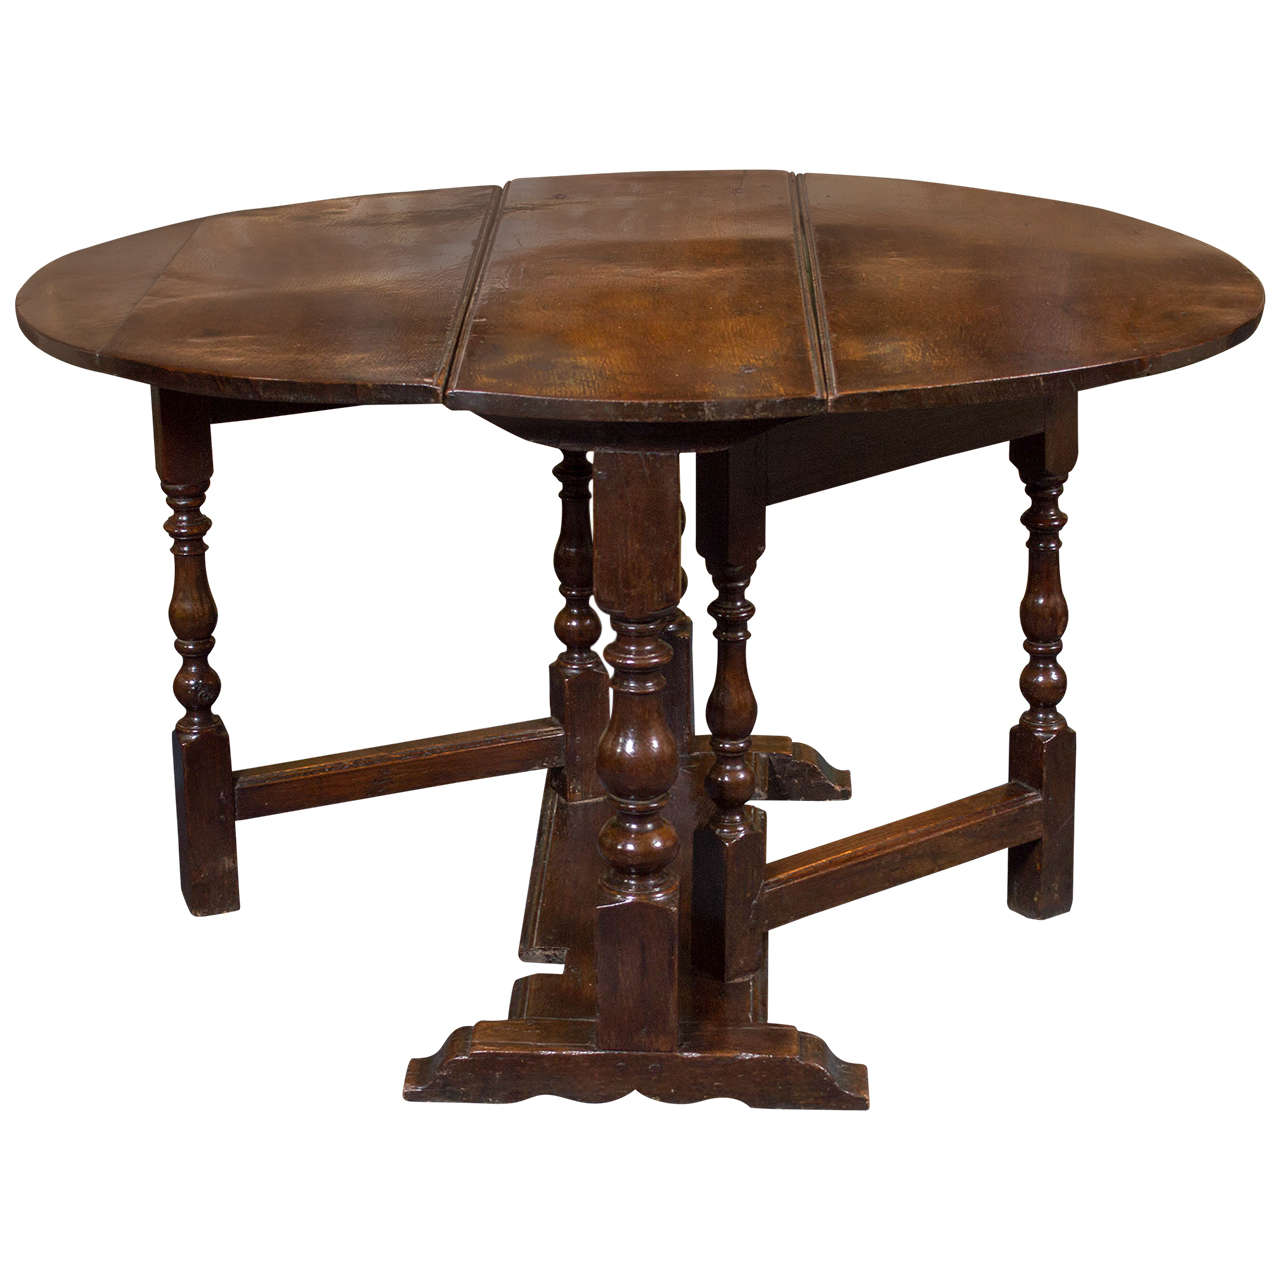 Diminutive English Oak Gateleg Table, Circa 1750